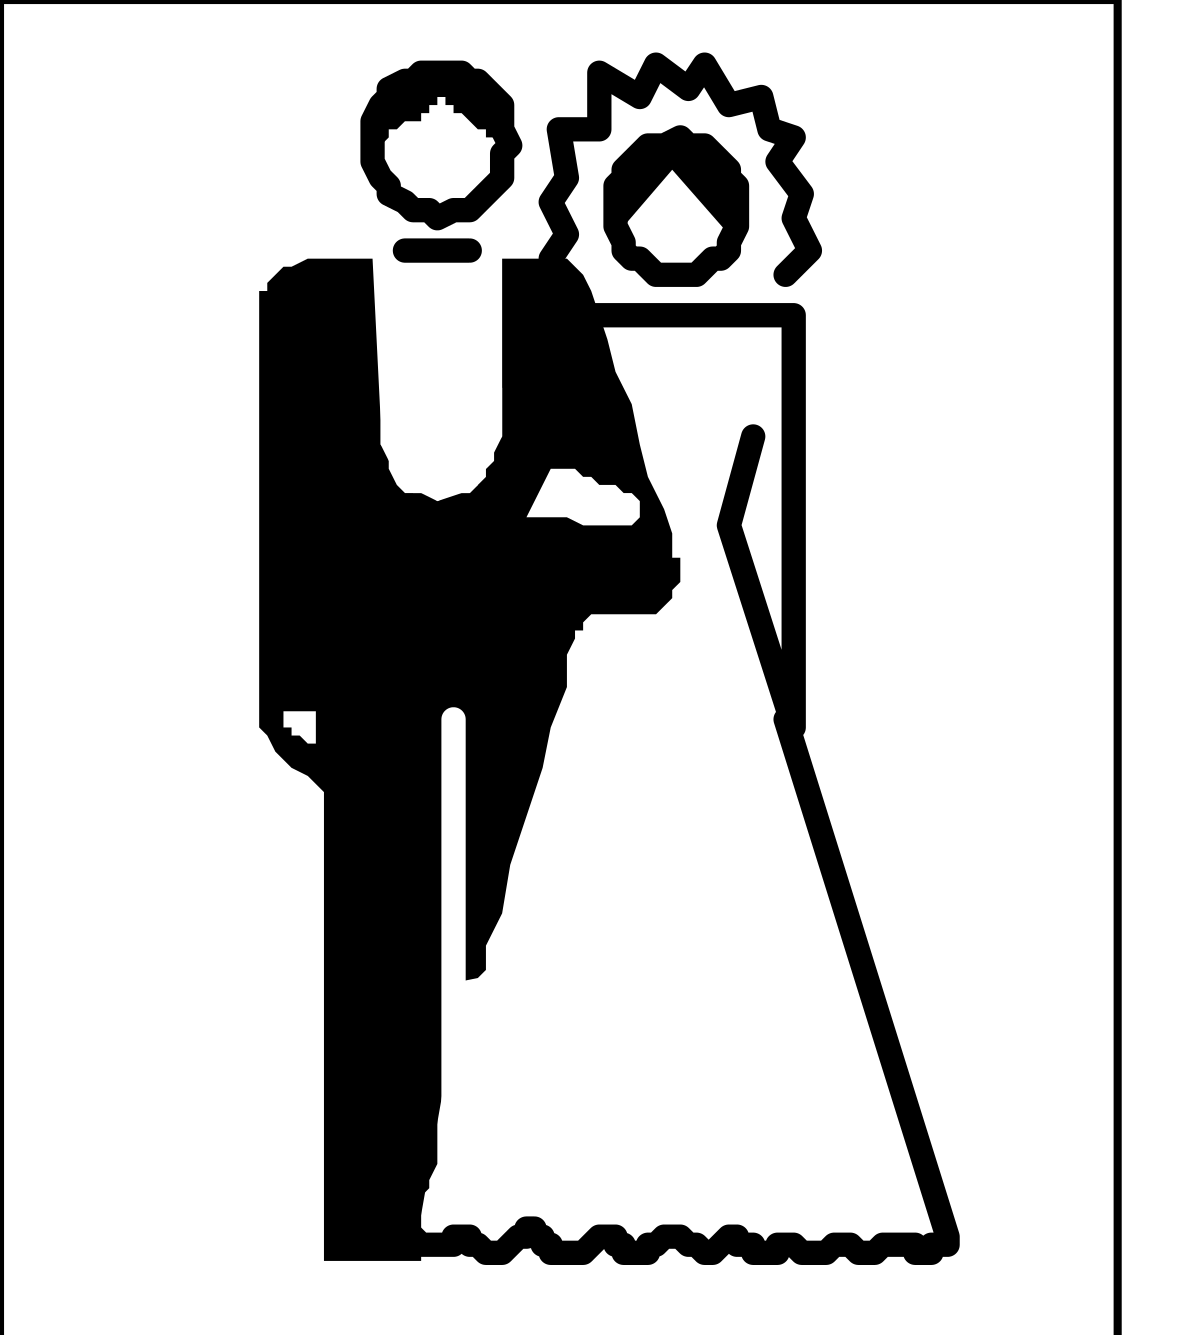 Vector Illustration Silhouette People Men Outline Black And White Suit Black Color Isolated Symbol Businessman Computer Graphic Women Occupation Adult Line Art Males Business One Person Clip Art Sign Working